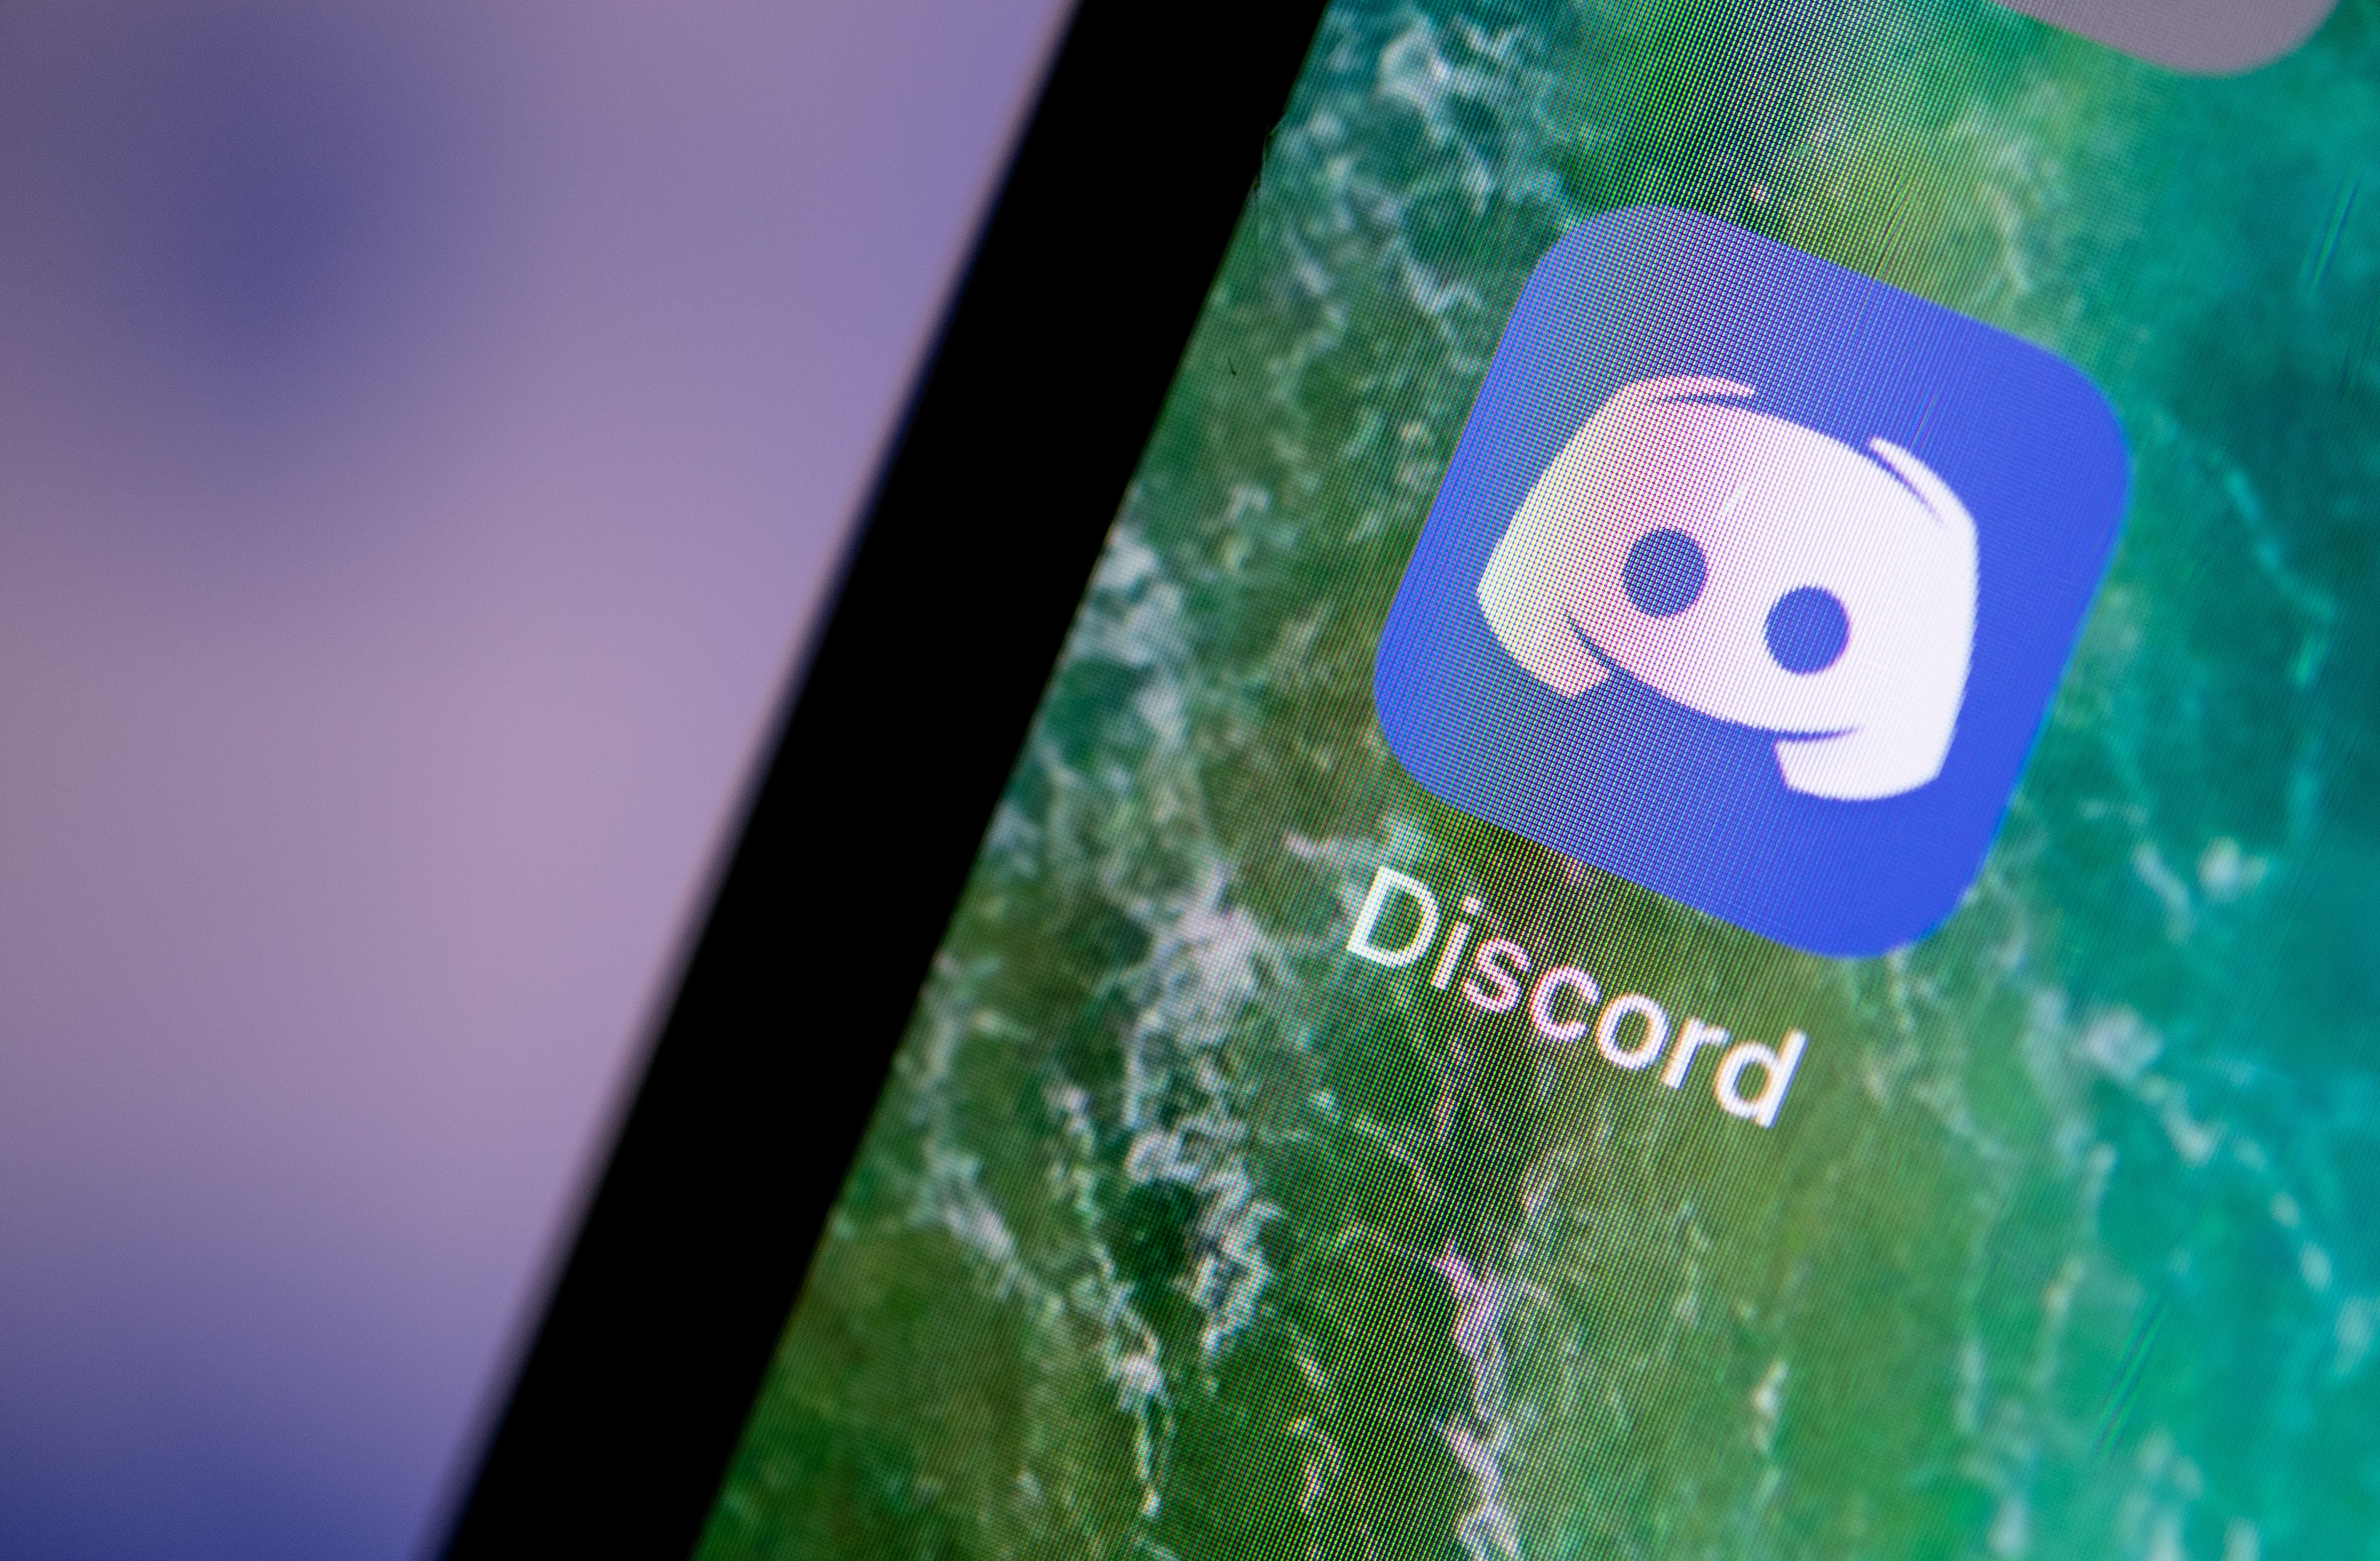 The Discord app displayed on the screen of an iPhone.